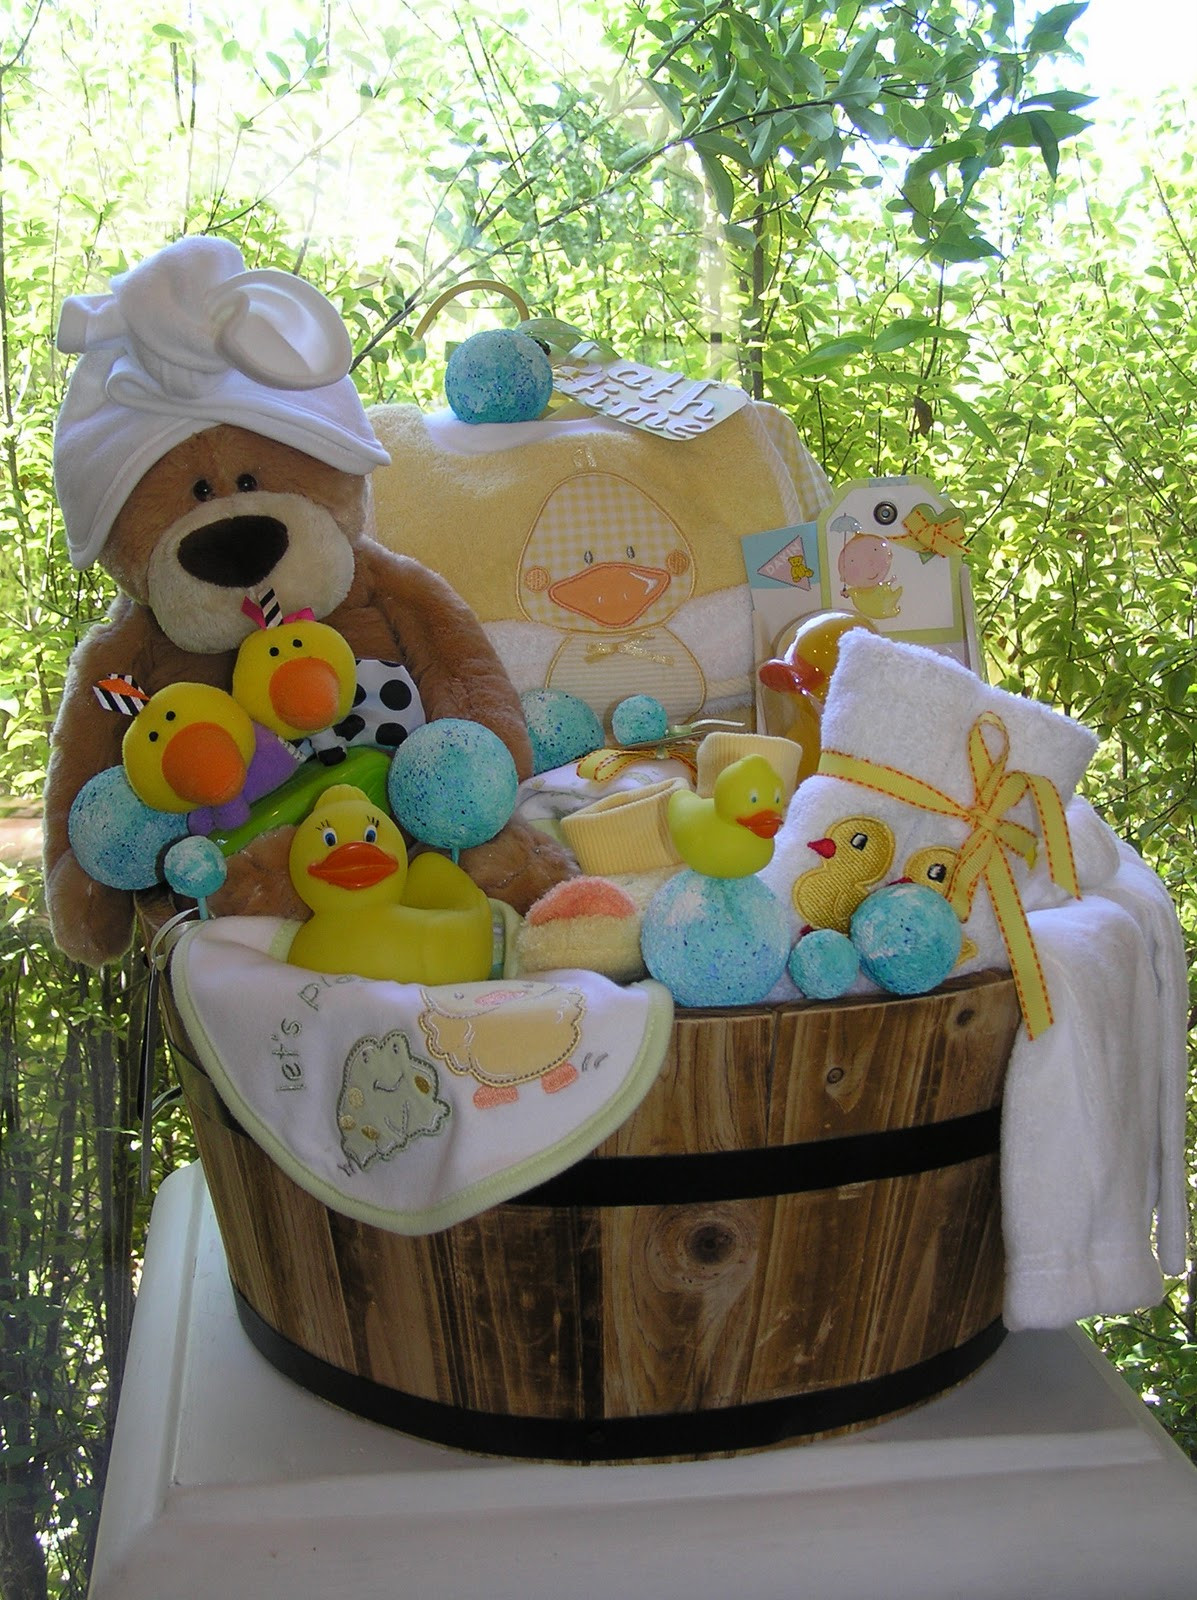 Unique Baby Shower Gift Ideas For Boys  White Horse Relics Unique Themed Baby Gift Baskets